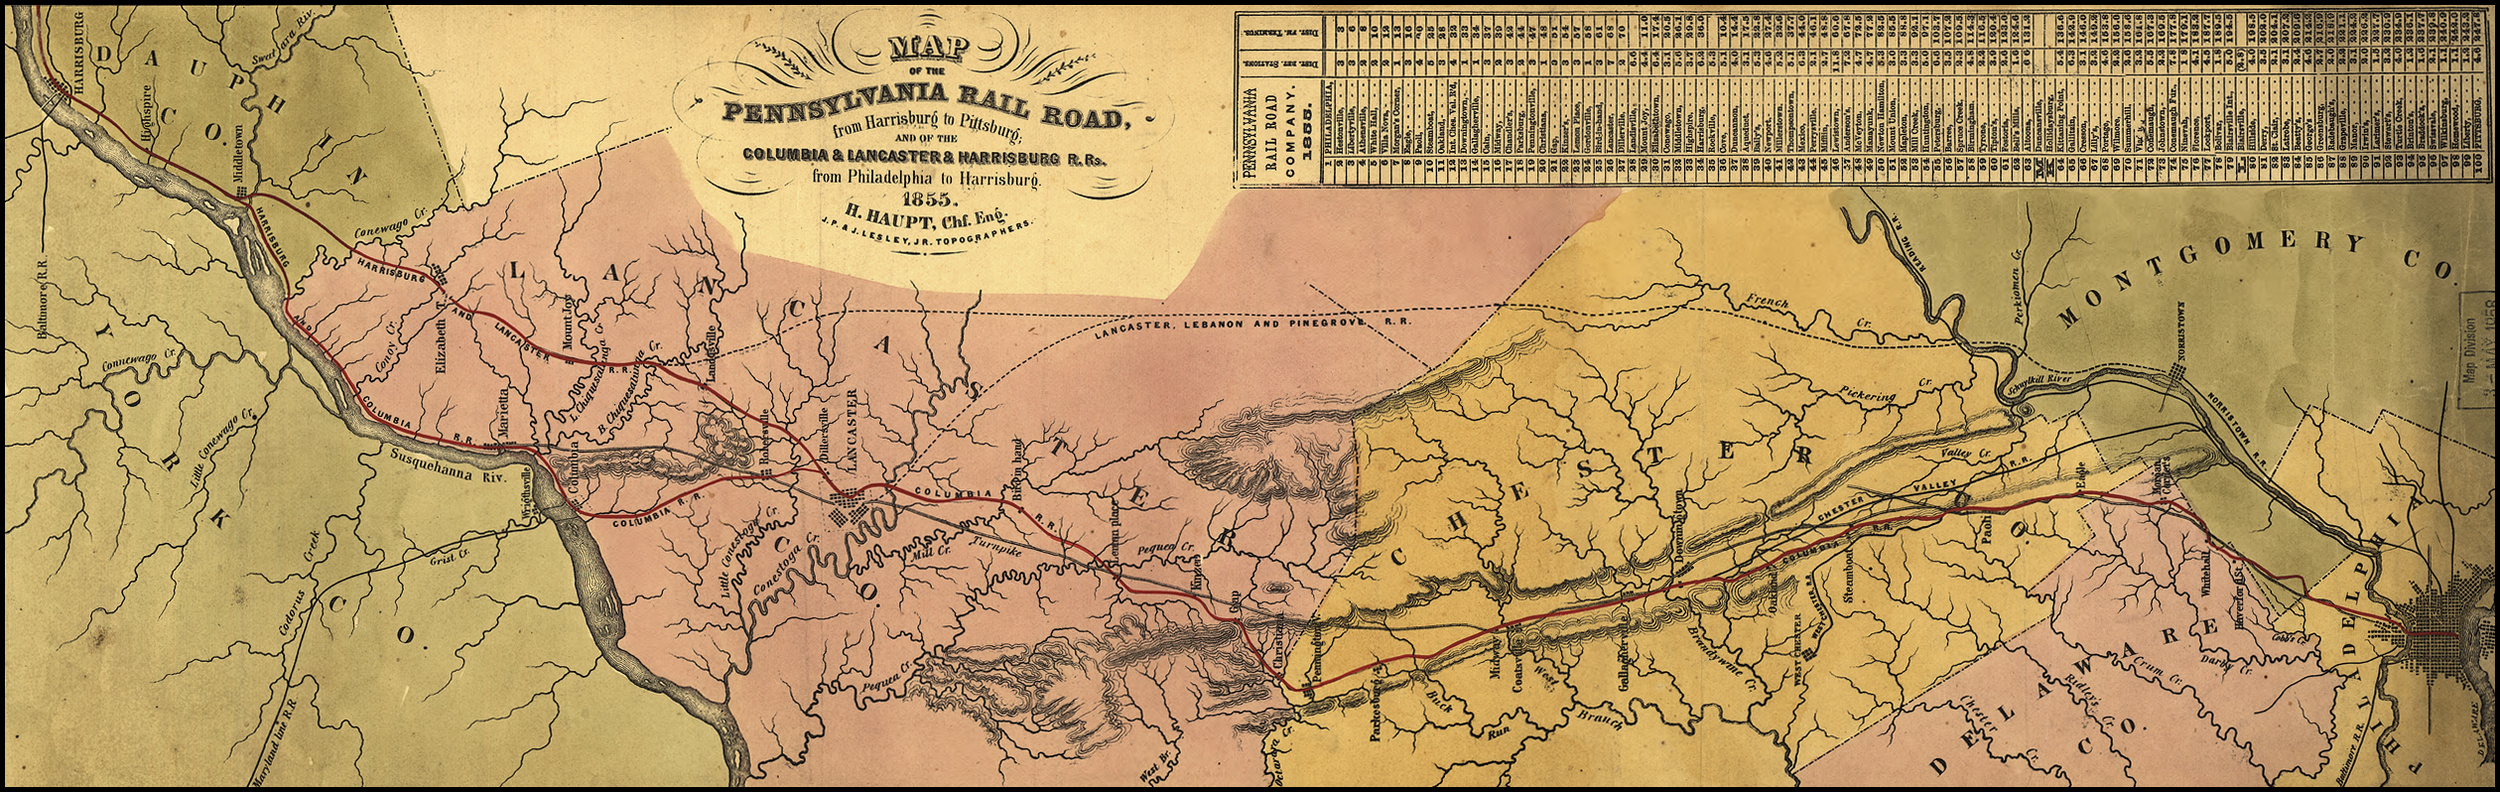 Detail of an 1855 map illustrating the Pennsylvania Railroad system and its connections. This map shows the proposed Lebanon, Lancaster & Pinegrove Railroad which was to bypass the Philadelphia & Columbia to gain access to Philadelphia prior to the Commonwealth and the PRR coming to an agreement on the sale price of the failing Main Line of Public Works in 1857. Map collection of the Library of Congress.